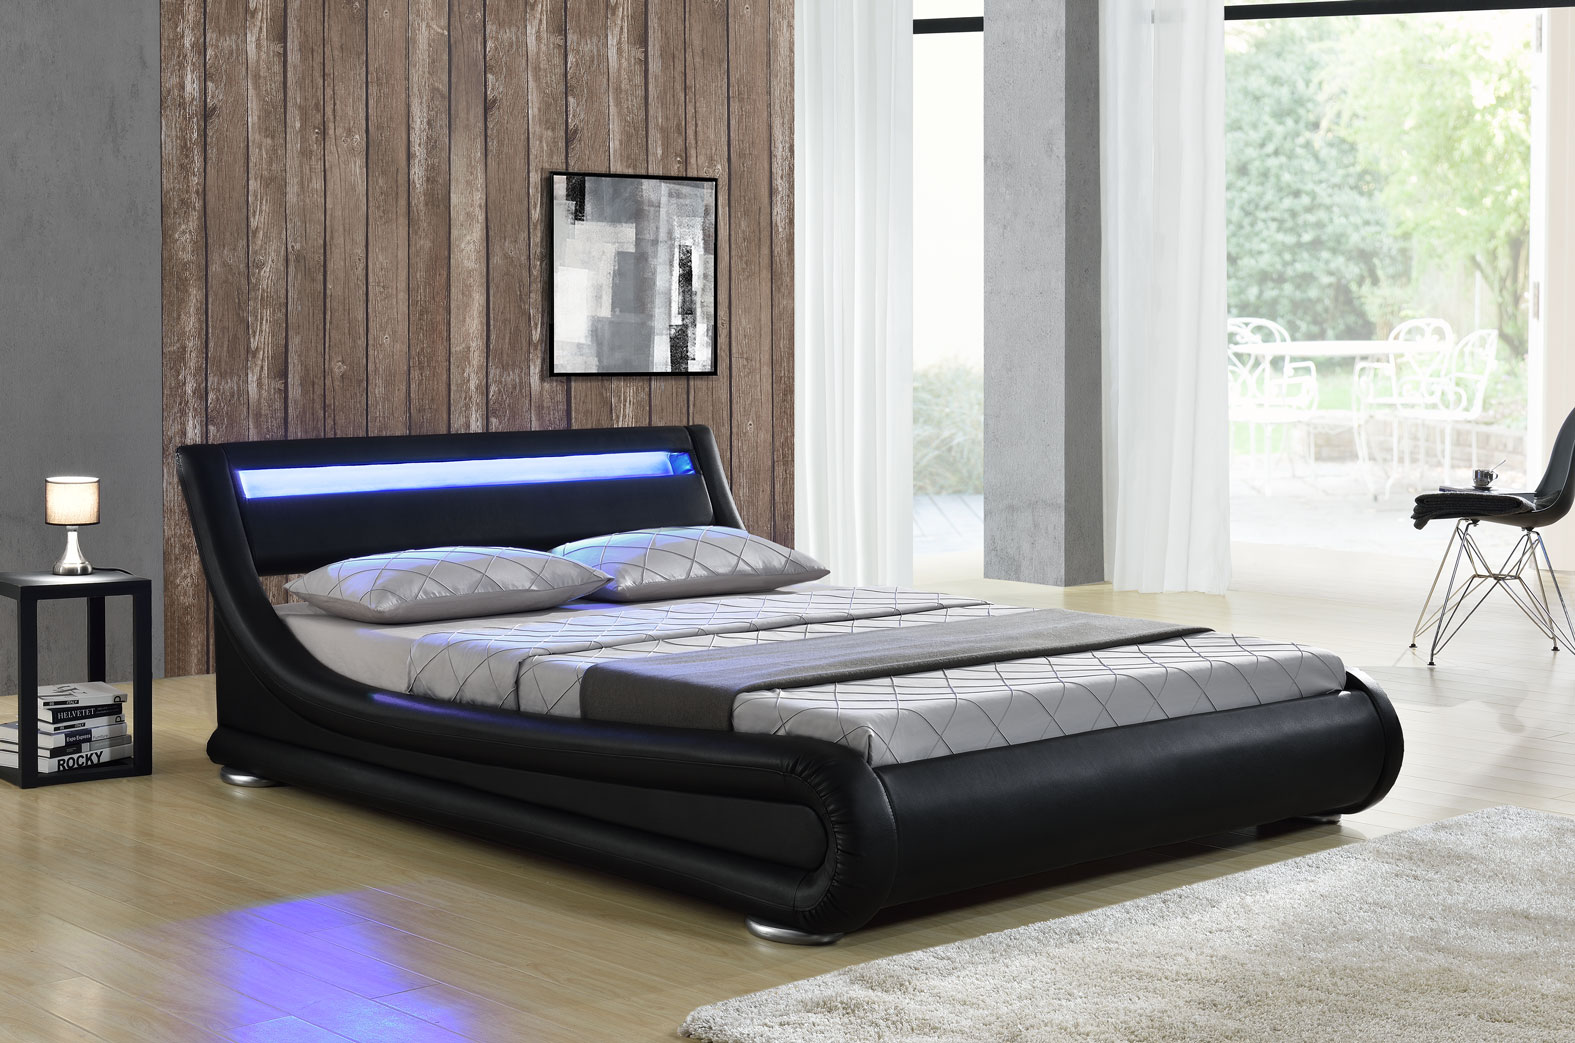 led bett seoul doppelbett polsterbett lattenrost kunstleder bettgestell ebay. Black Bedroom Furniture Sets. Home Design Ideas